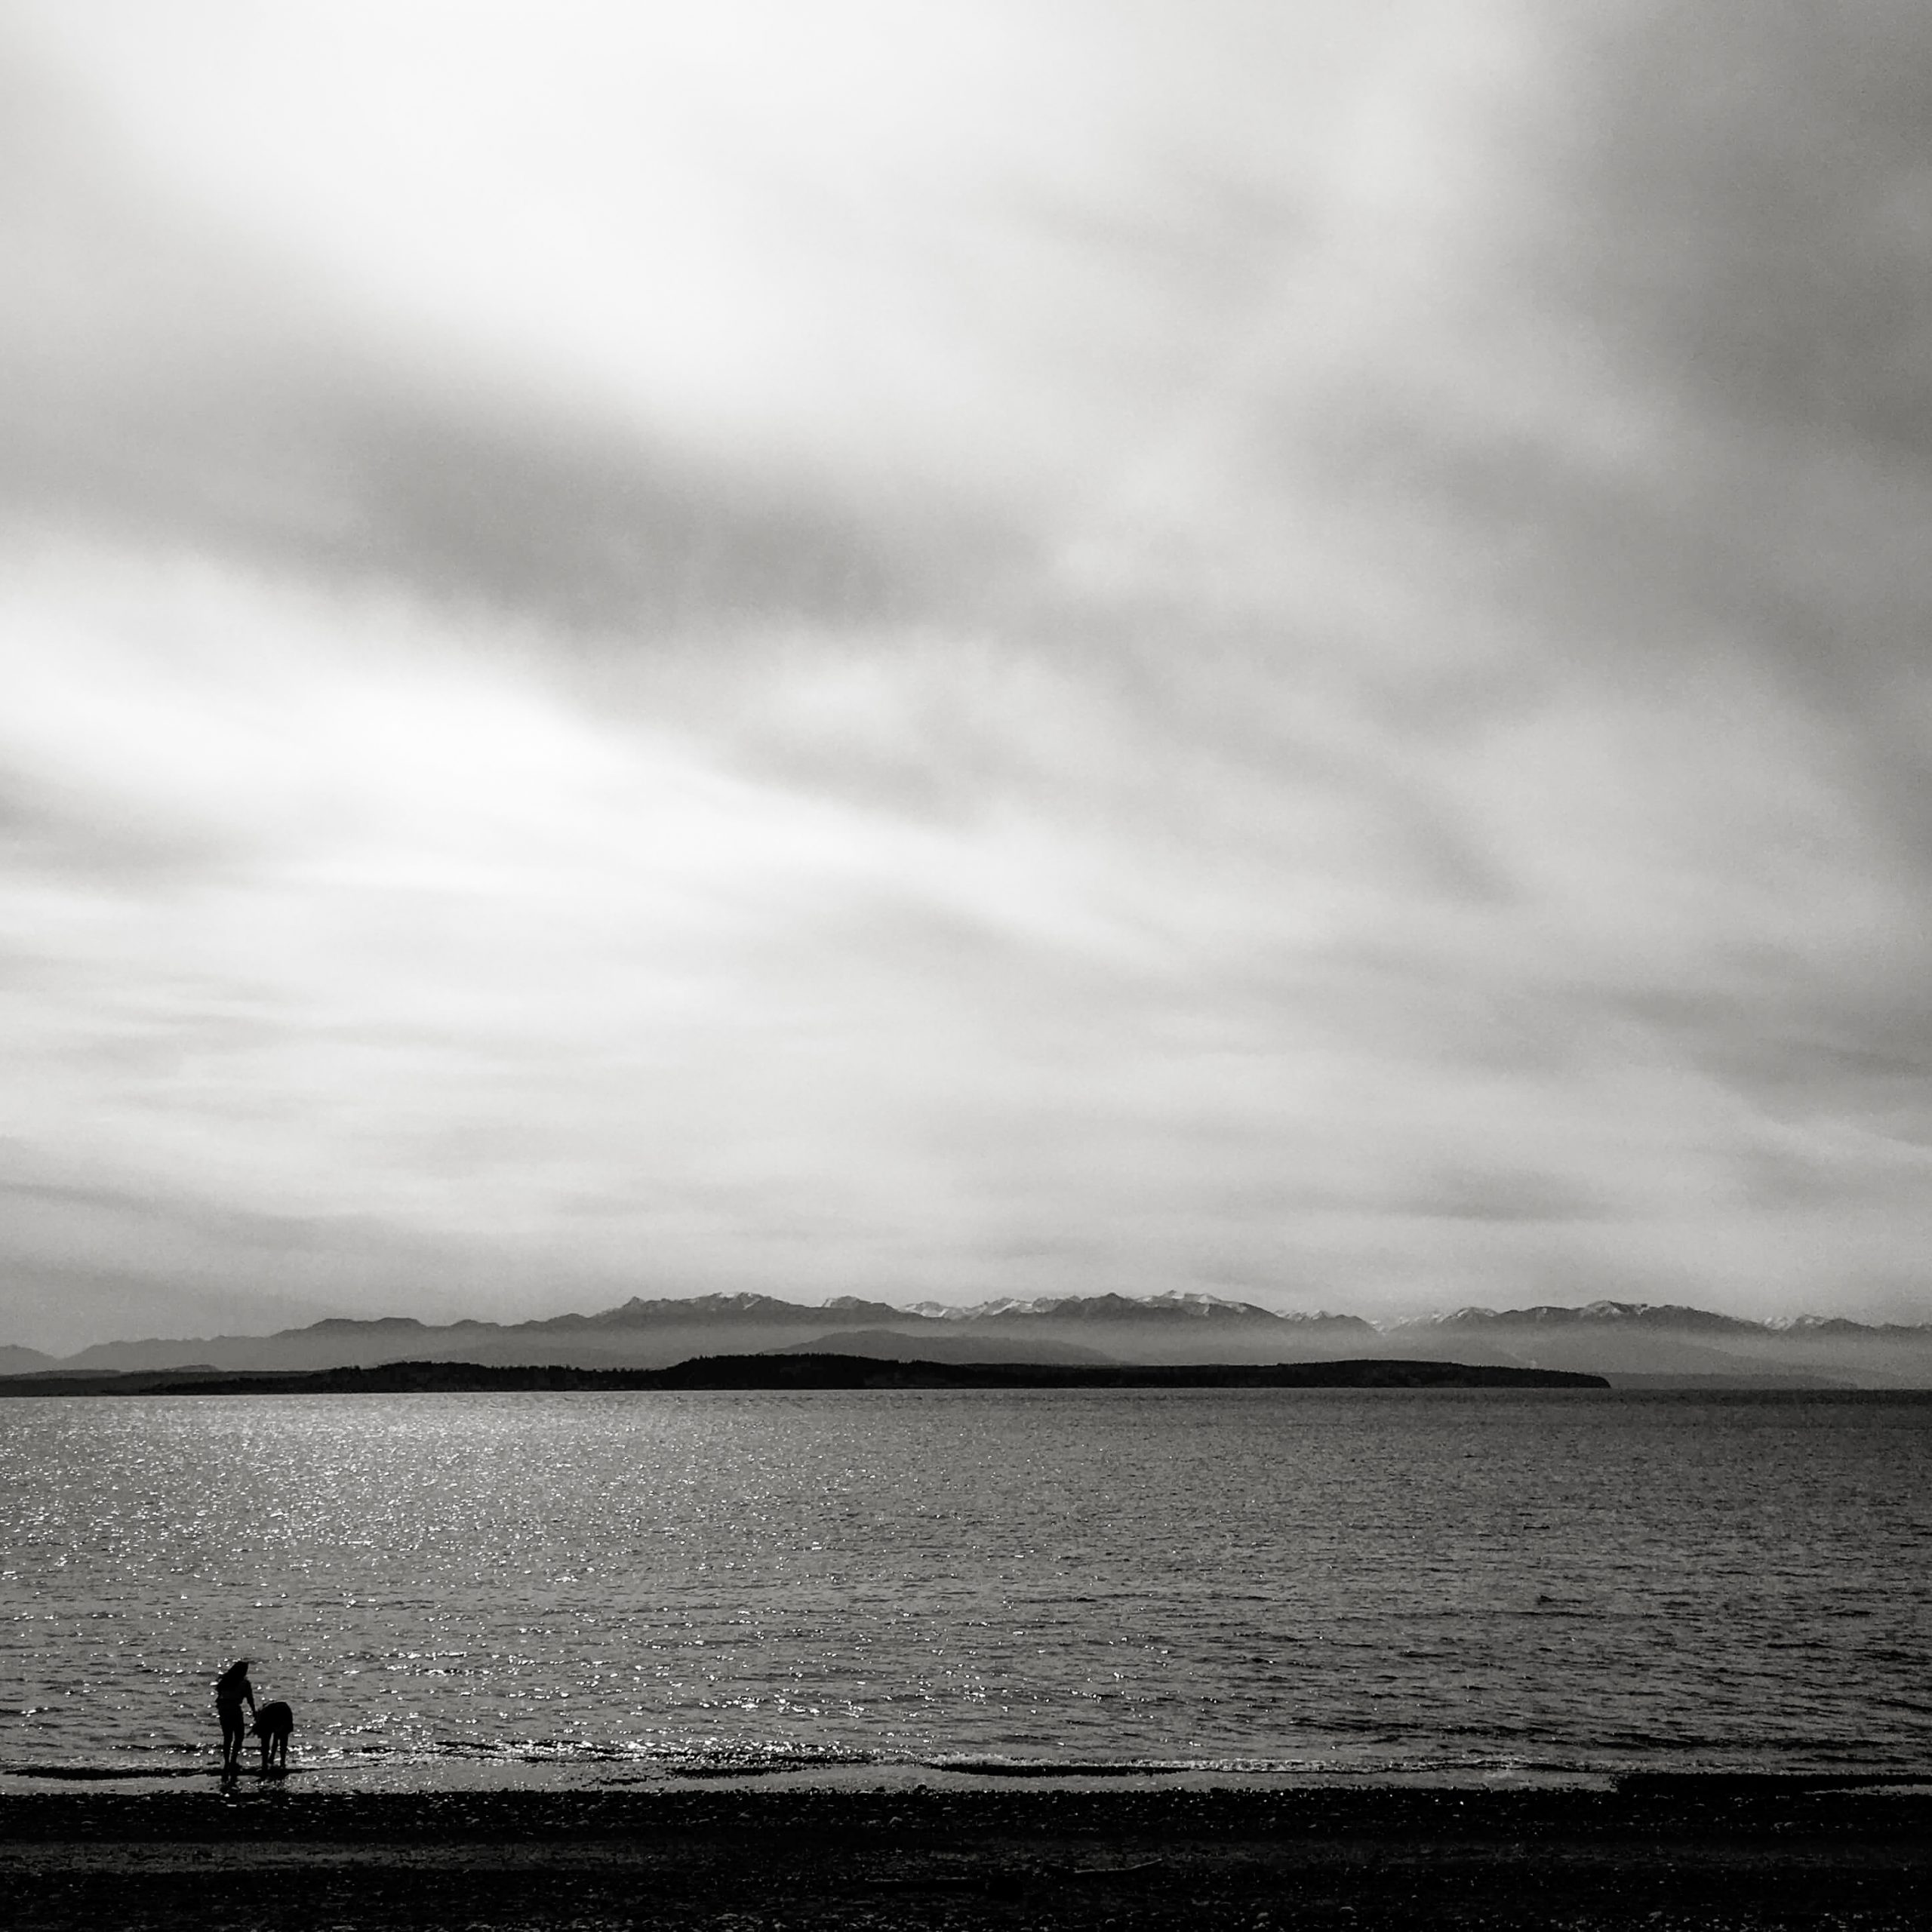 two silhouetted figures against the sea and a dramatic sky